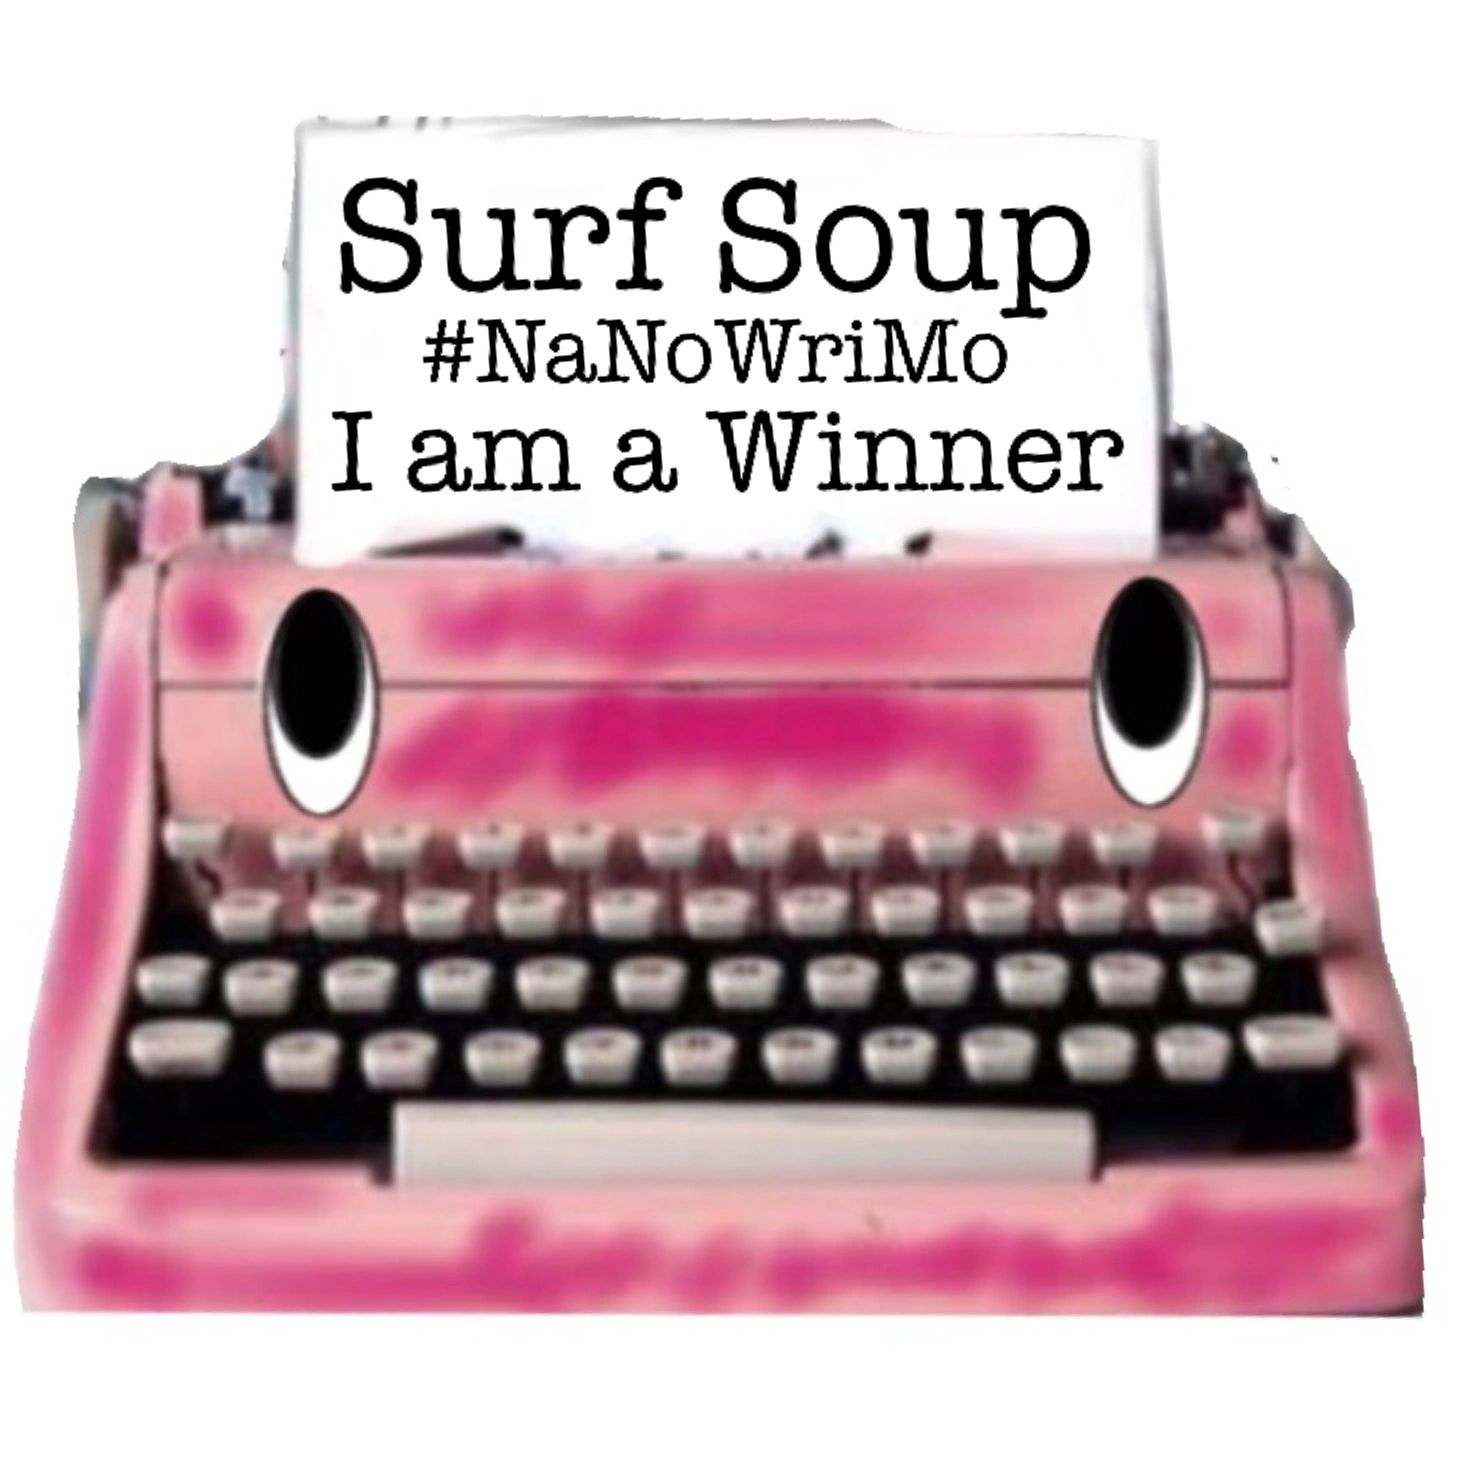 Typo, typewriter, pink, type, boo boo, help, character, Namowrimo, winner, typing, misspell, mistake